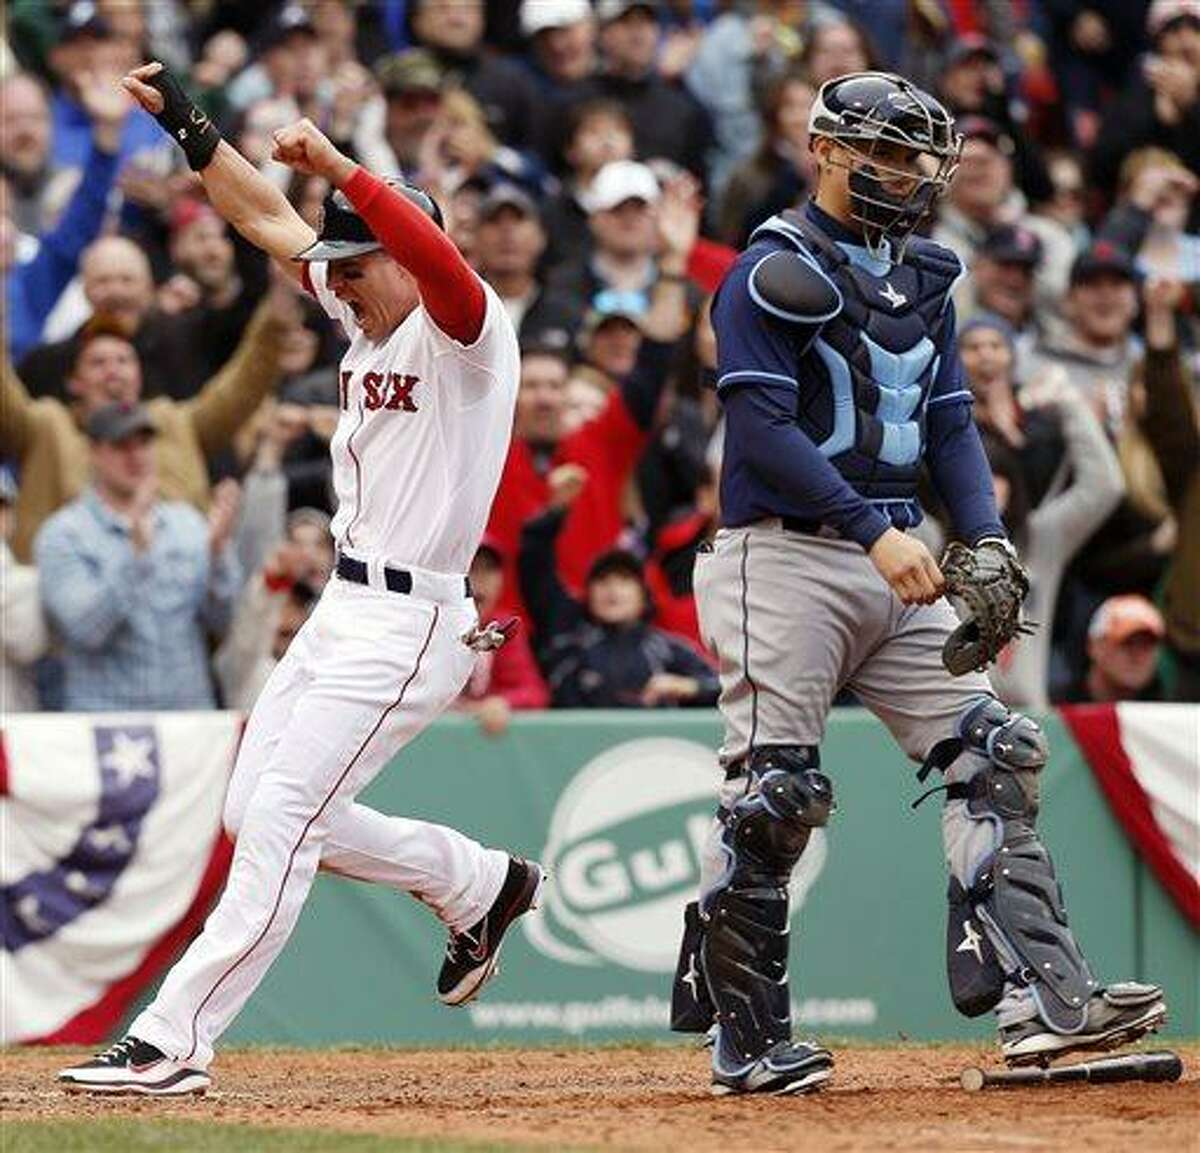 Boston Red Sox's Jacoby Ellsbury, left, celebrates behind Tampa Bay Rays' Jose Lobaton as he scores the game-winning run on an RBI single by teammate Shane Victorino in the 10th inning of a baseball game in Boston, Saturday, April 13, 2013. The Red Sox won 2-1. (AP Photo/Michael Dwyer)